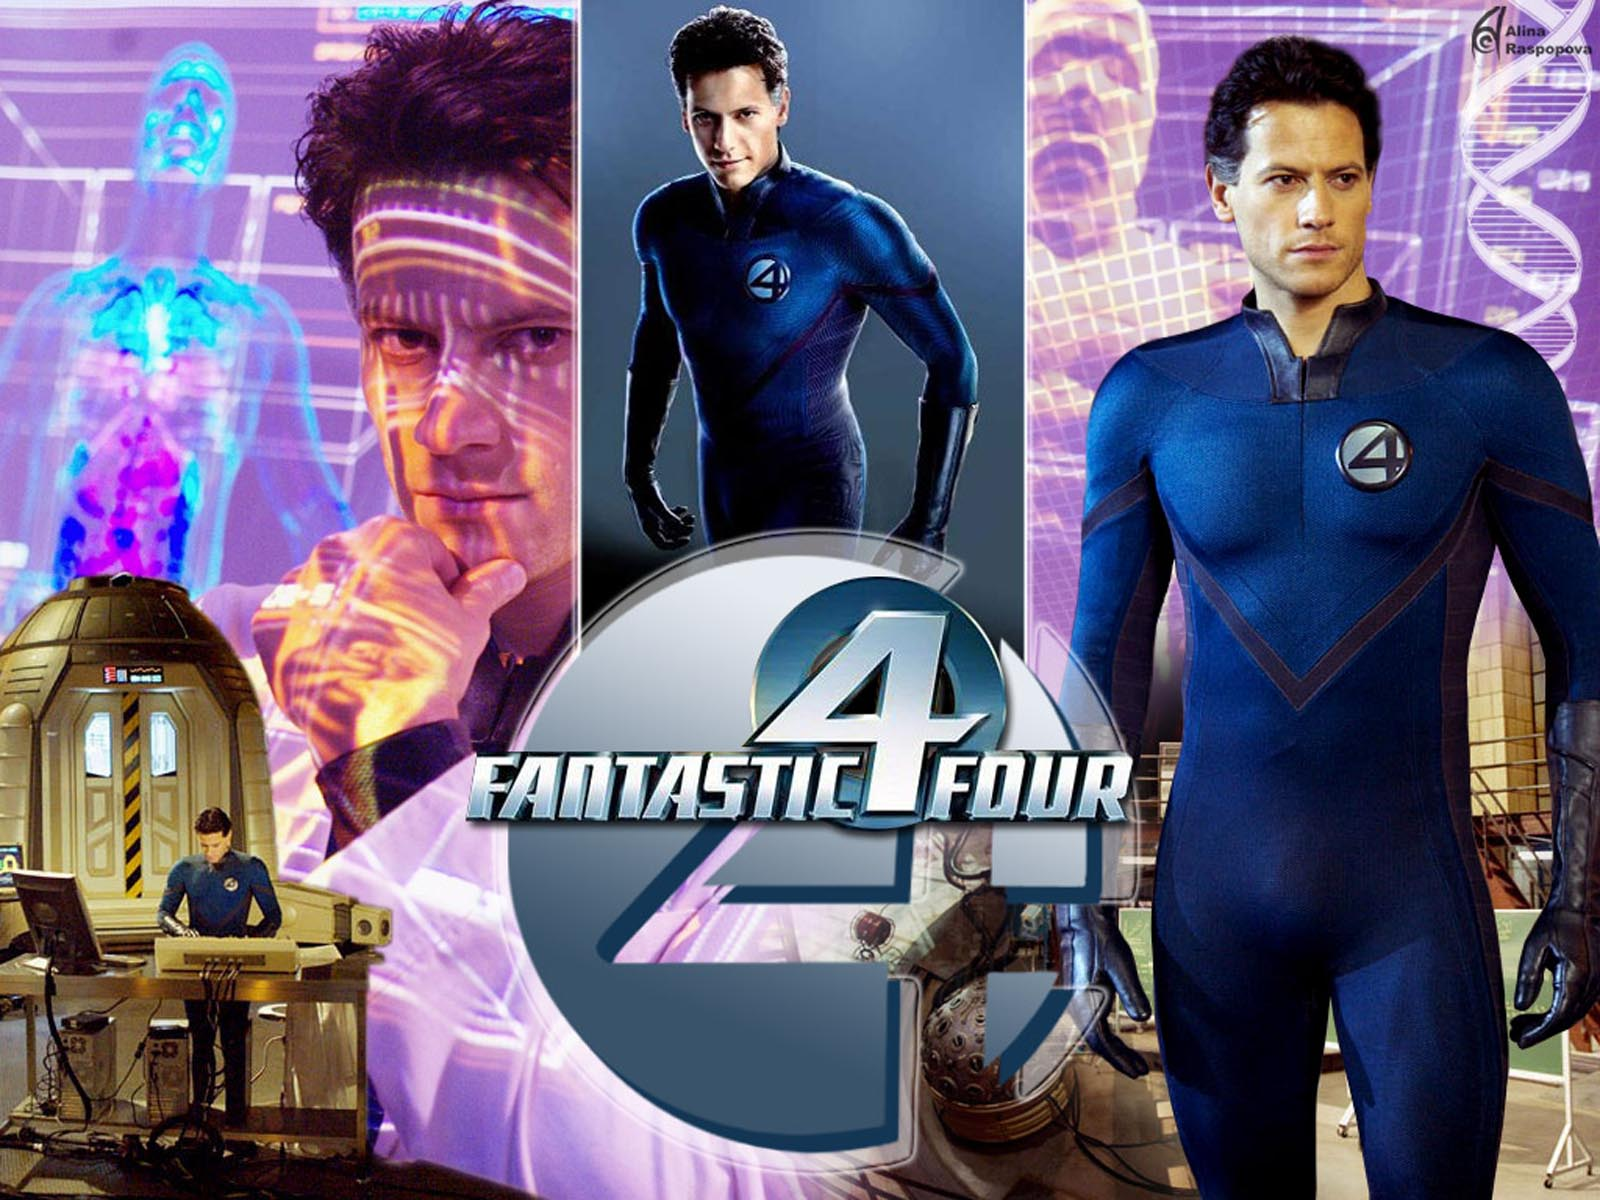 ncie fantastic four free wallpapers hd